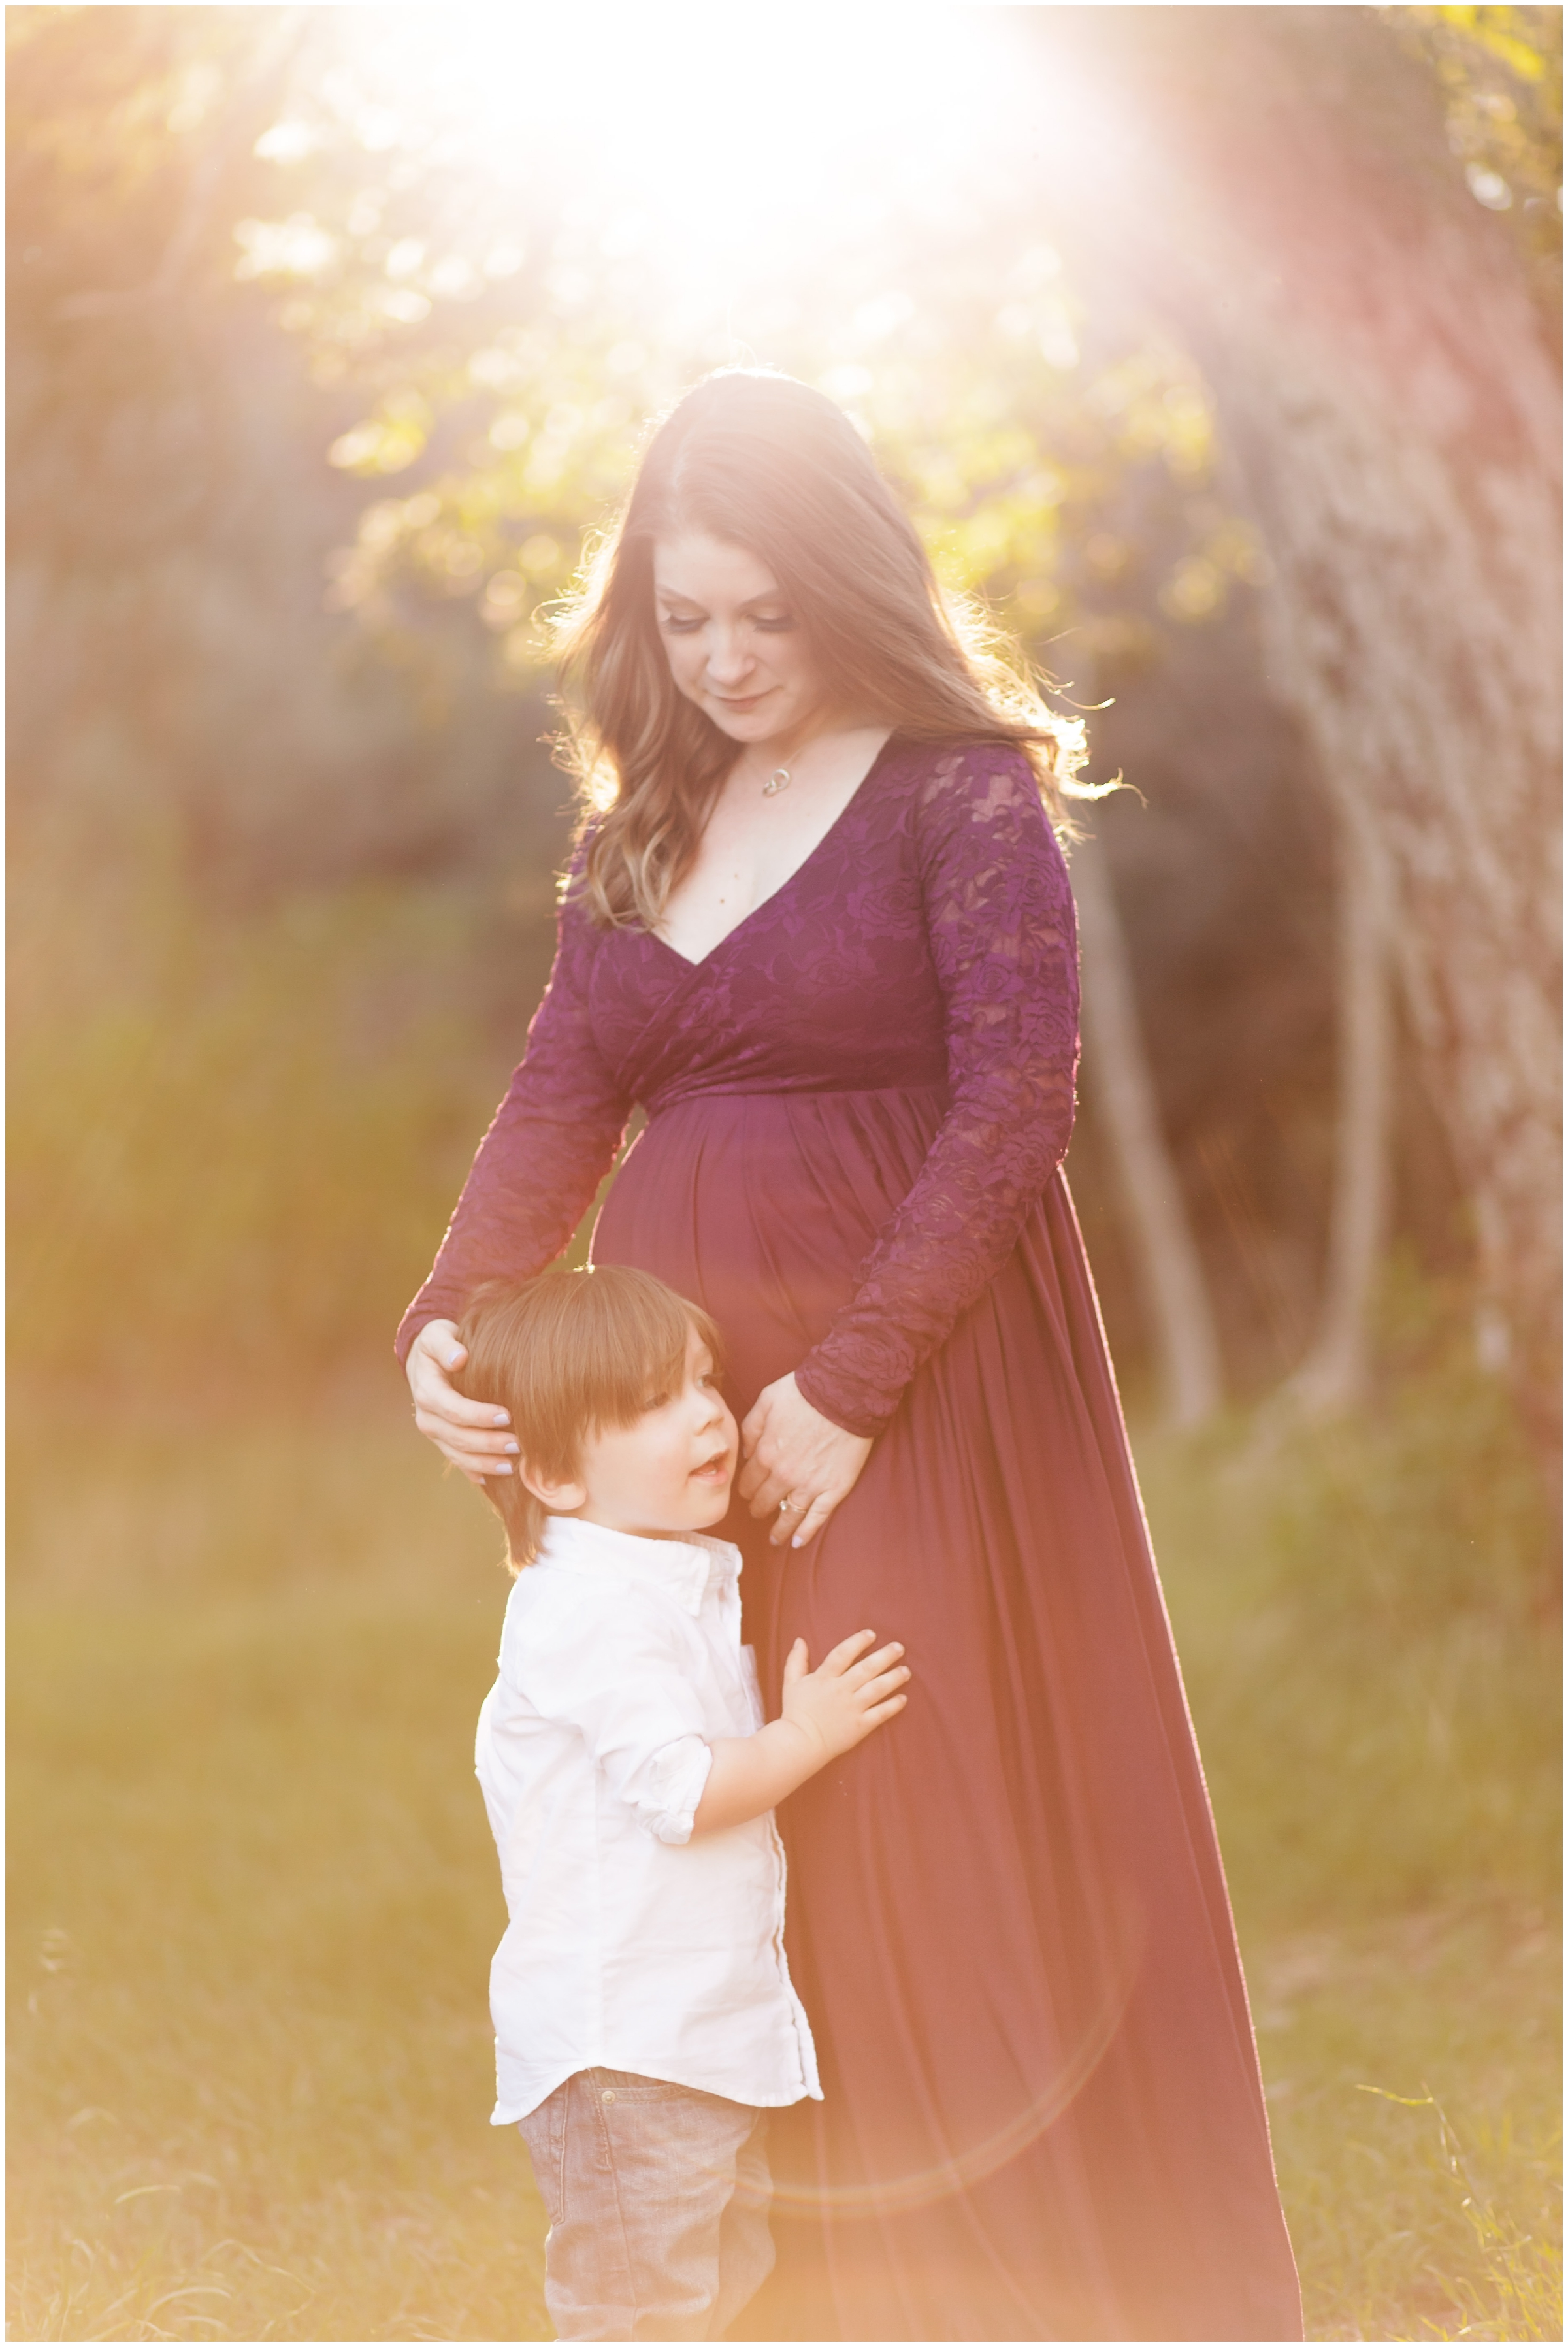 Family Maternity Portraits by Just Maggie Photography - Los Angeles Maternity and Newborn Photographer